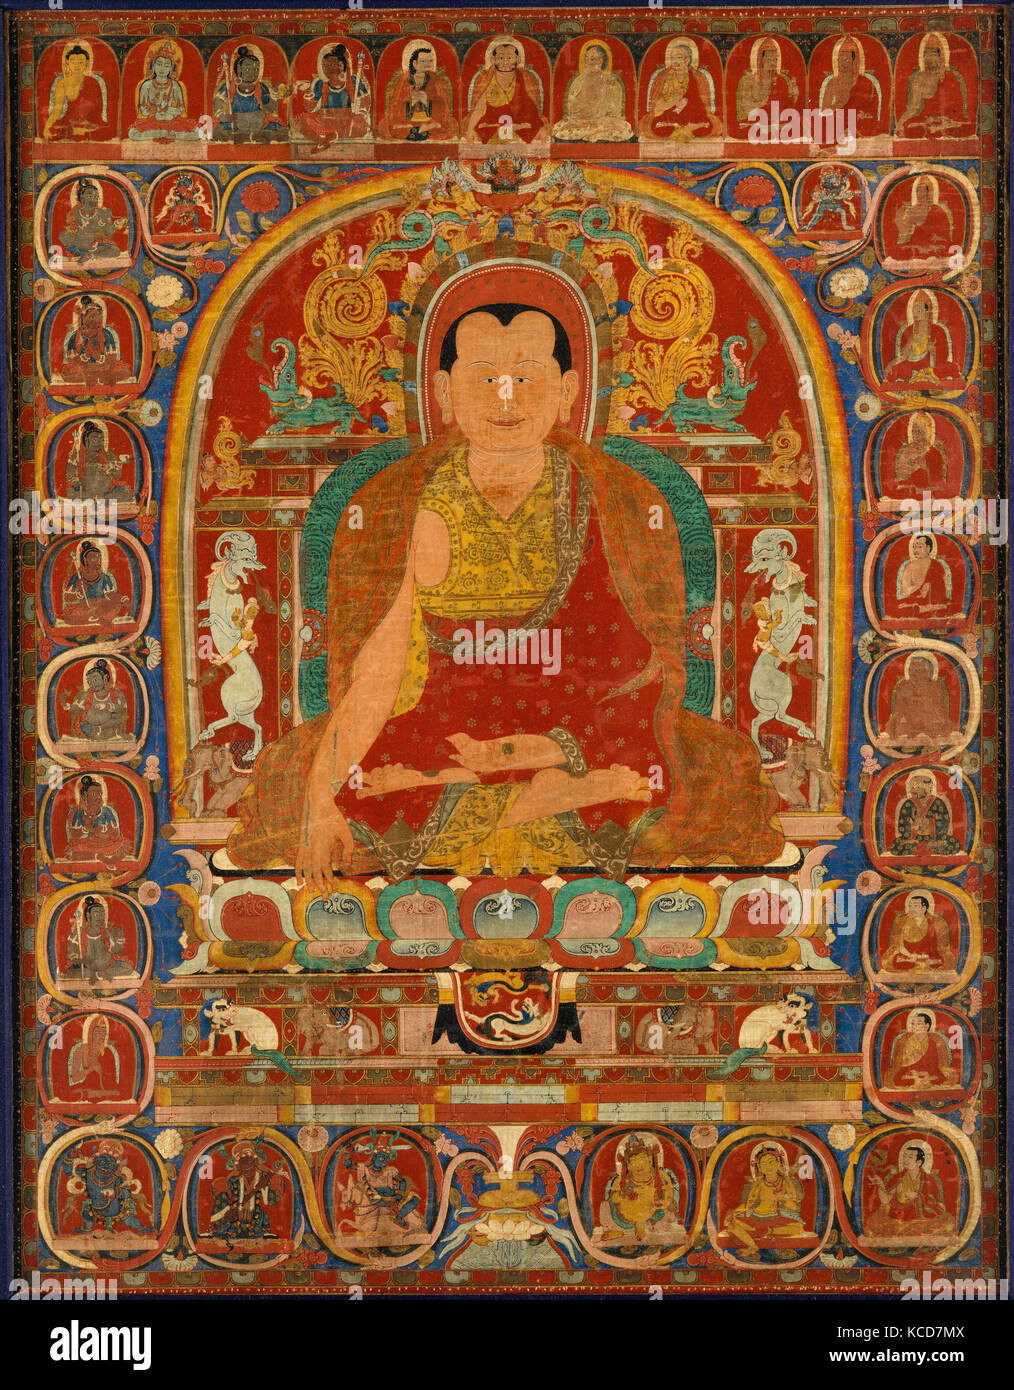 Lineage Portrait of an Abbot, ca. 1350, Central Tibet, Distemper on cloth, Overall: 30 3/8 x 23 1/2 in. (77.2 x - Stock Image